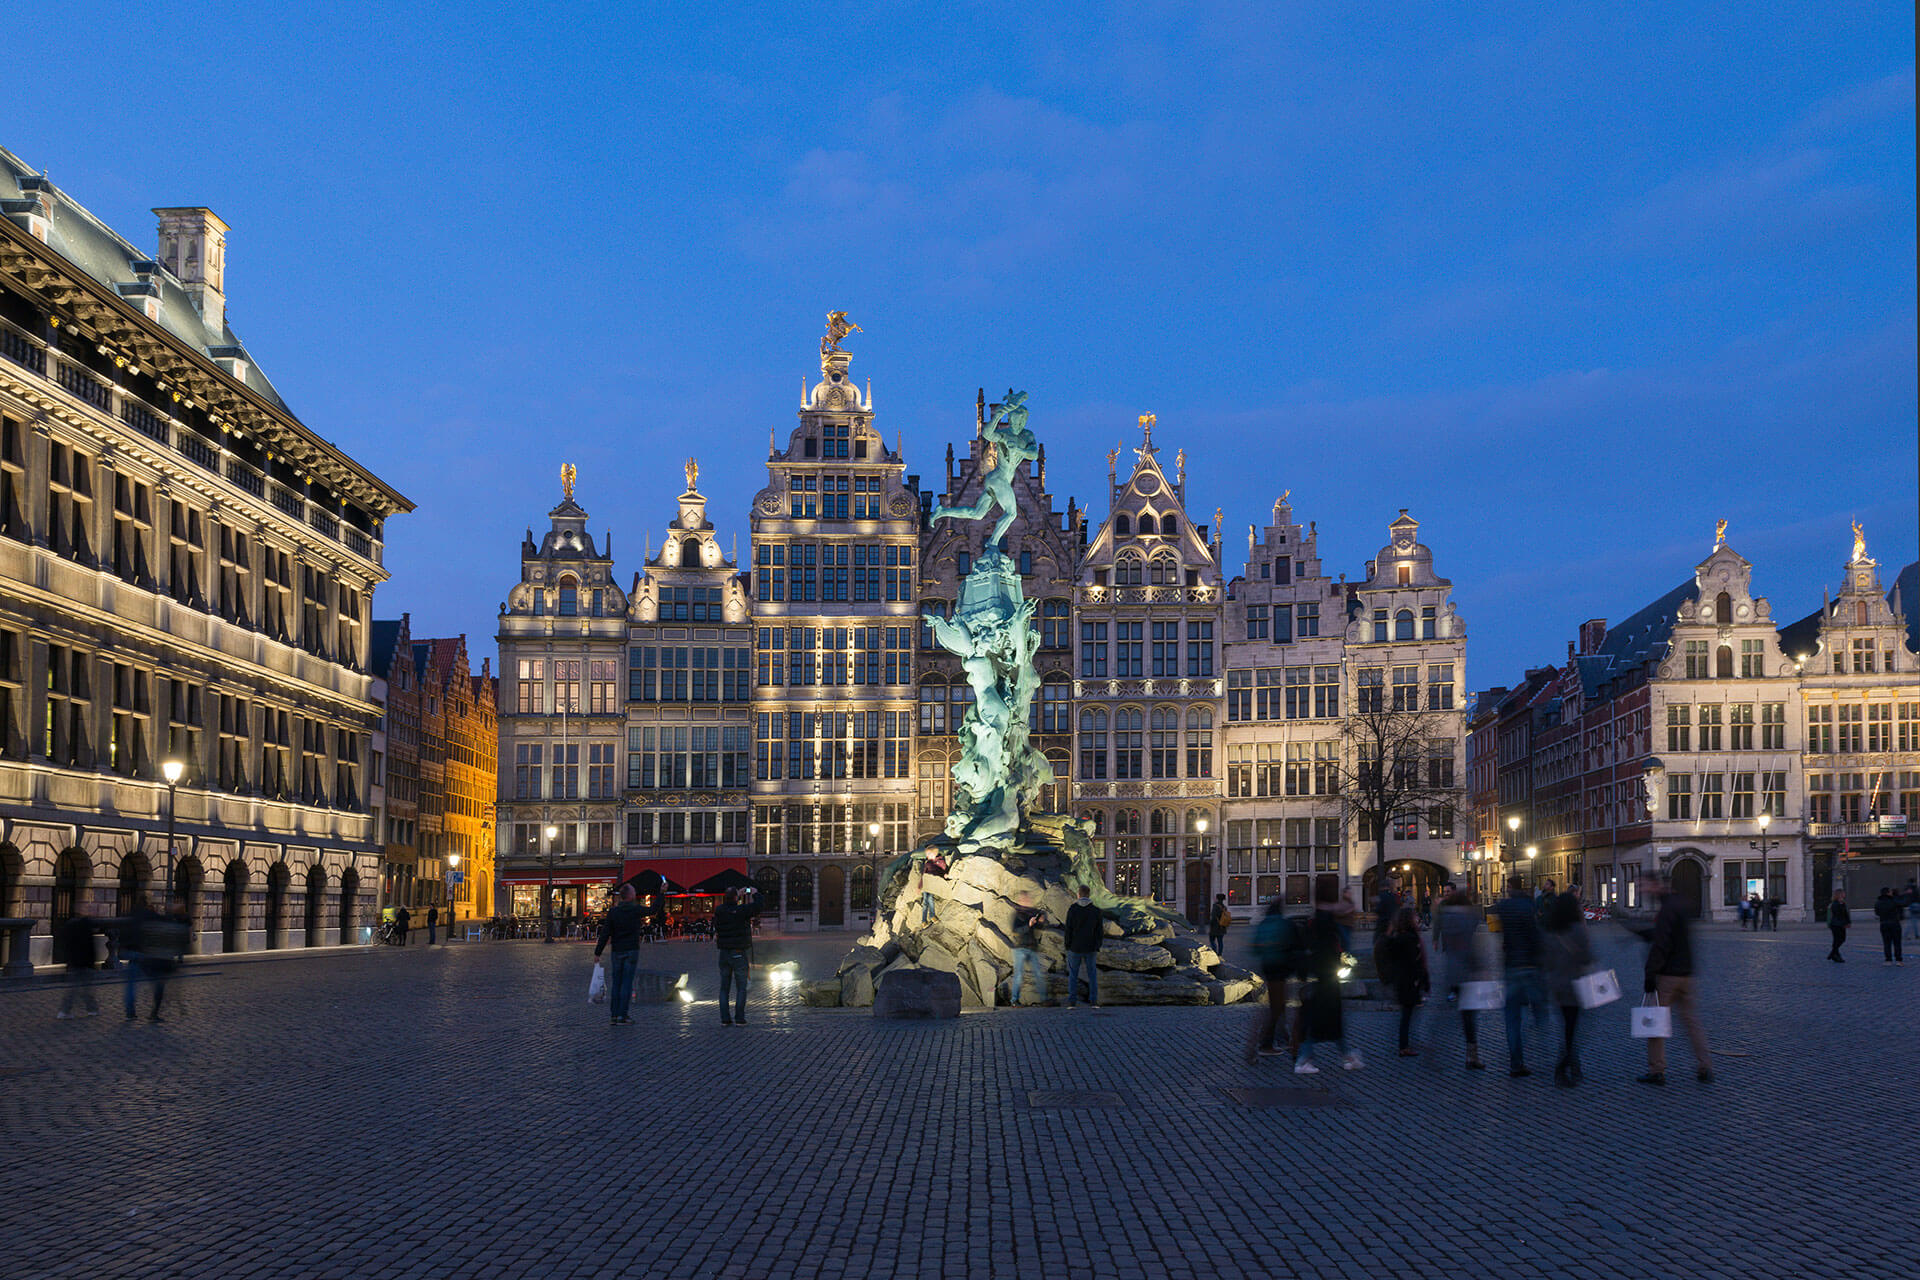 Grote Markt, the heart of Antwerp city centre, is an attractive space thanks to a new lighting scheme